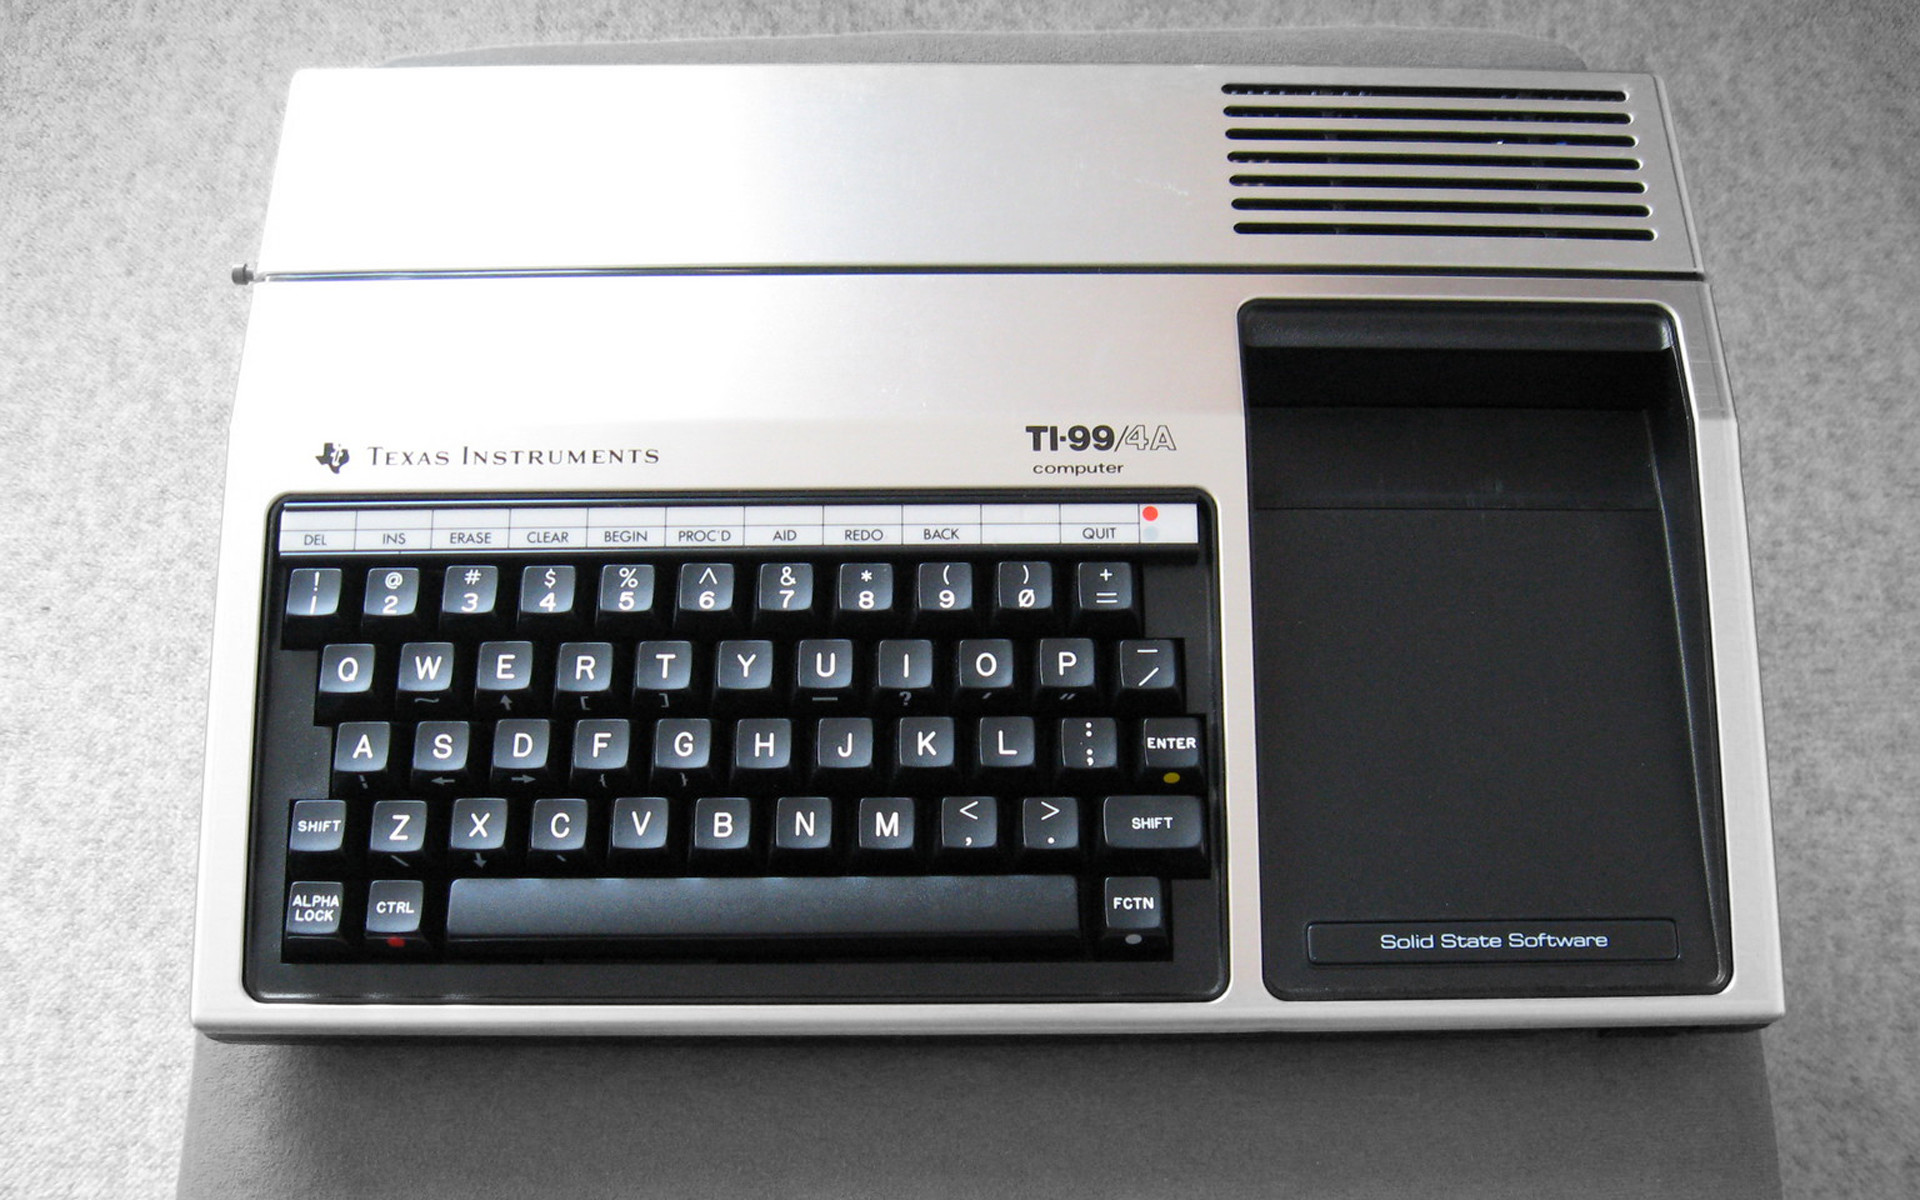 1920x1200 1 texas instruments TI-99/4A HD Wallpapers | Backgrounds - Wallpaper Abyss